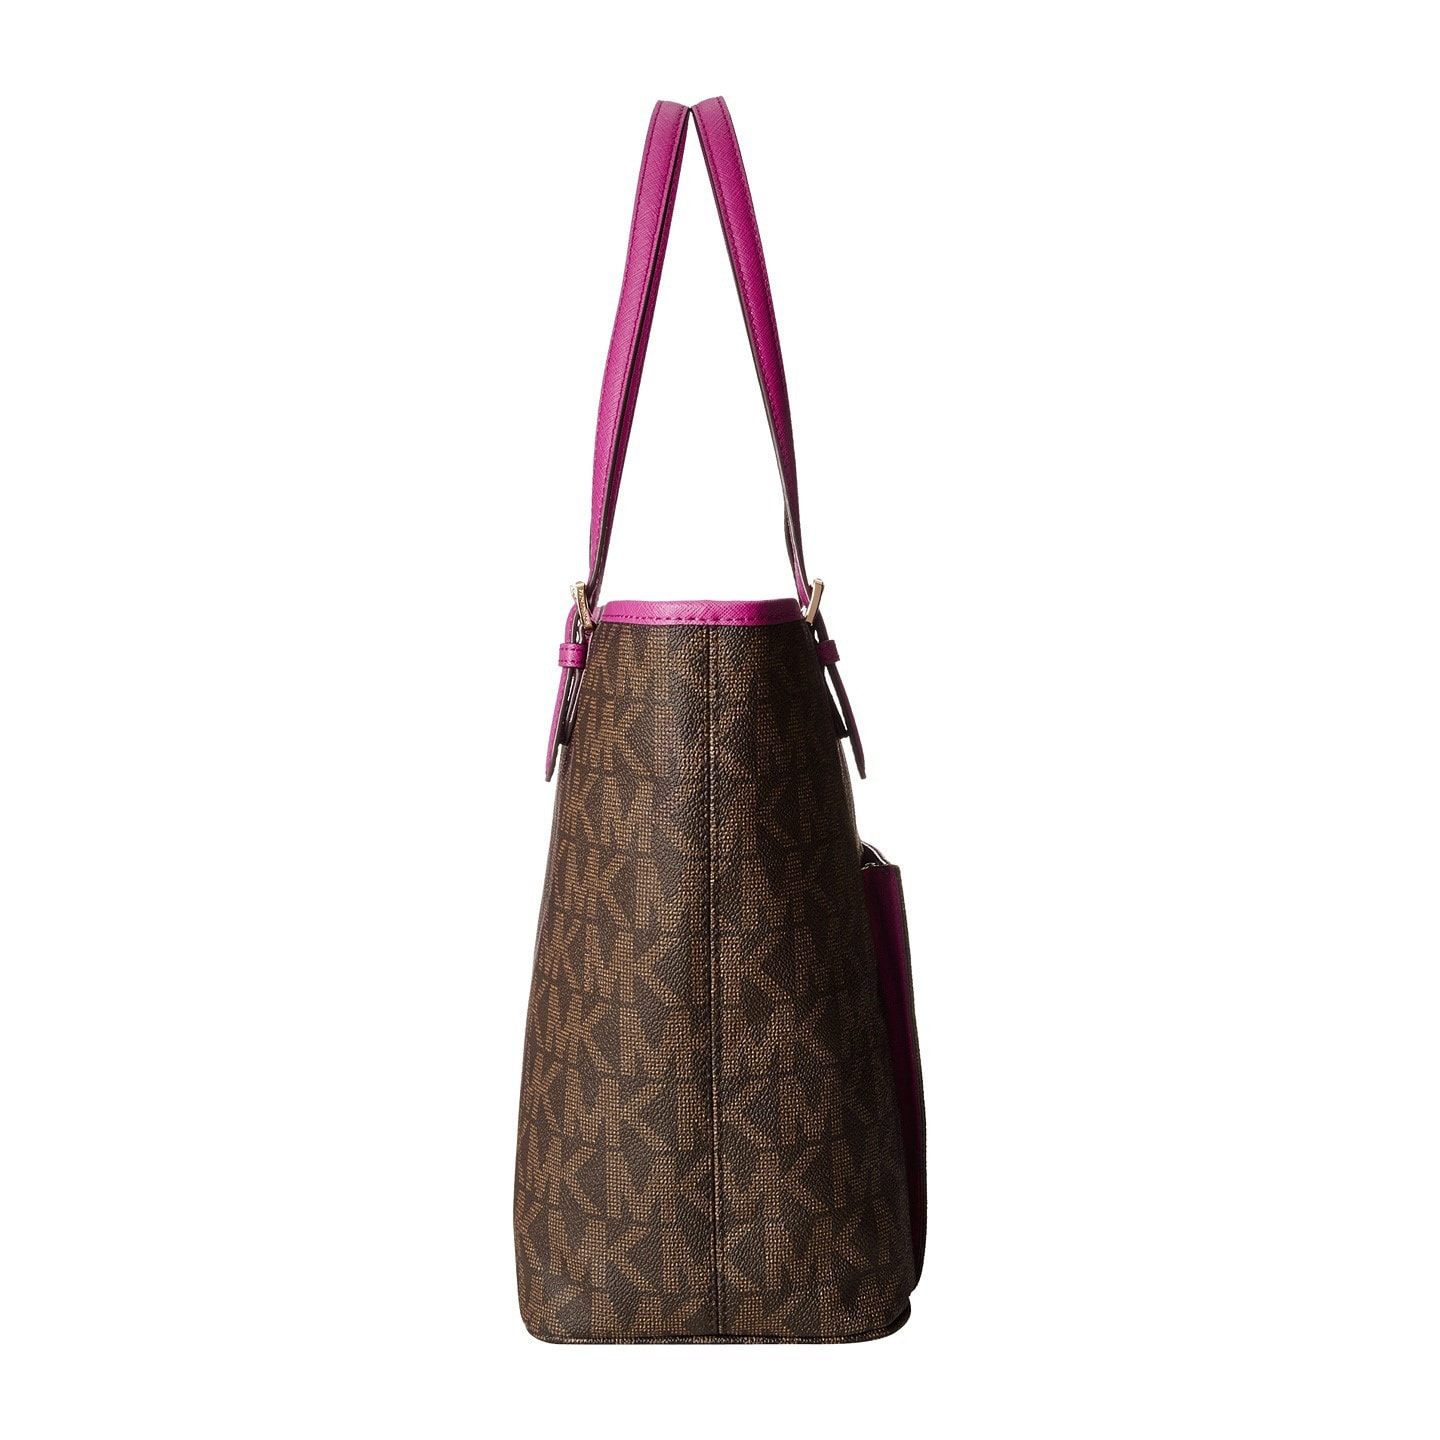 359c0e61419a Shop MICHAEL Michael Kors Jet Set Medium Snap Pocket Tote - Free Shipping  Today - Overstock - 10184432